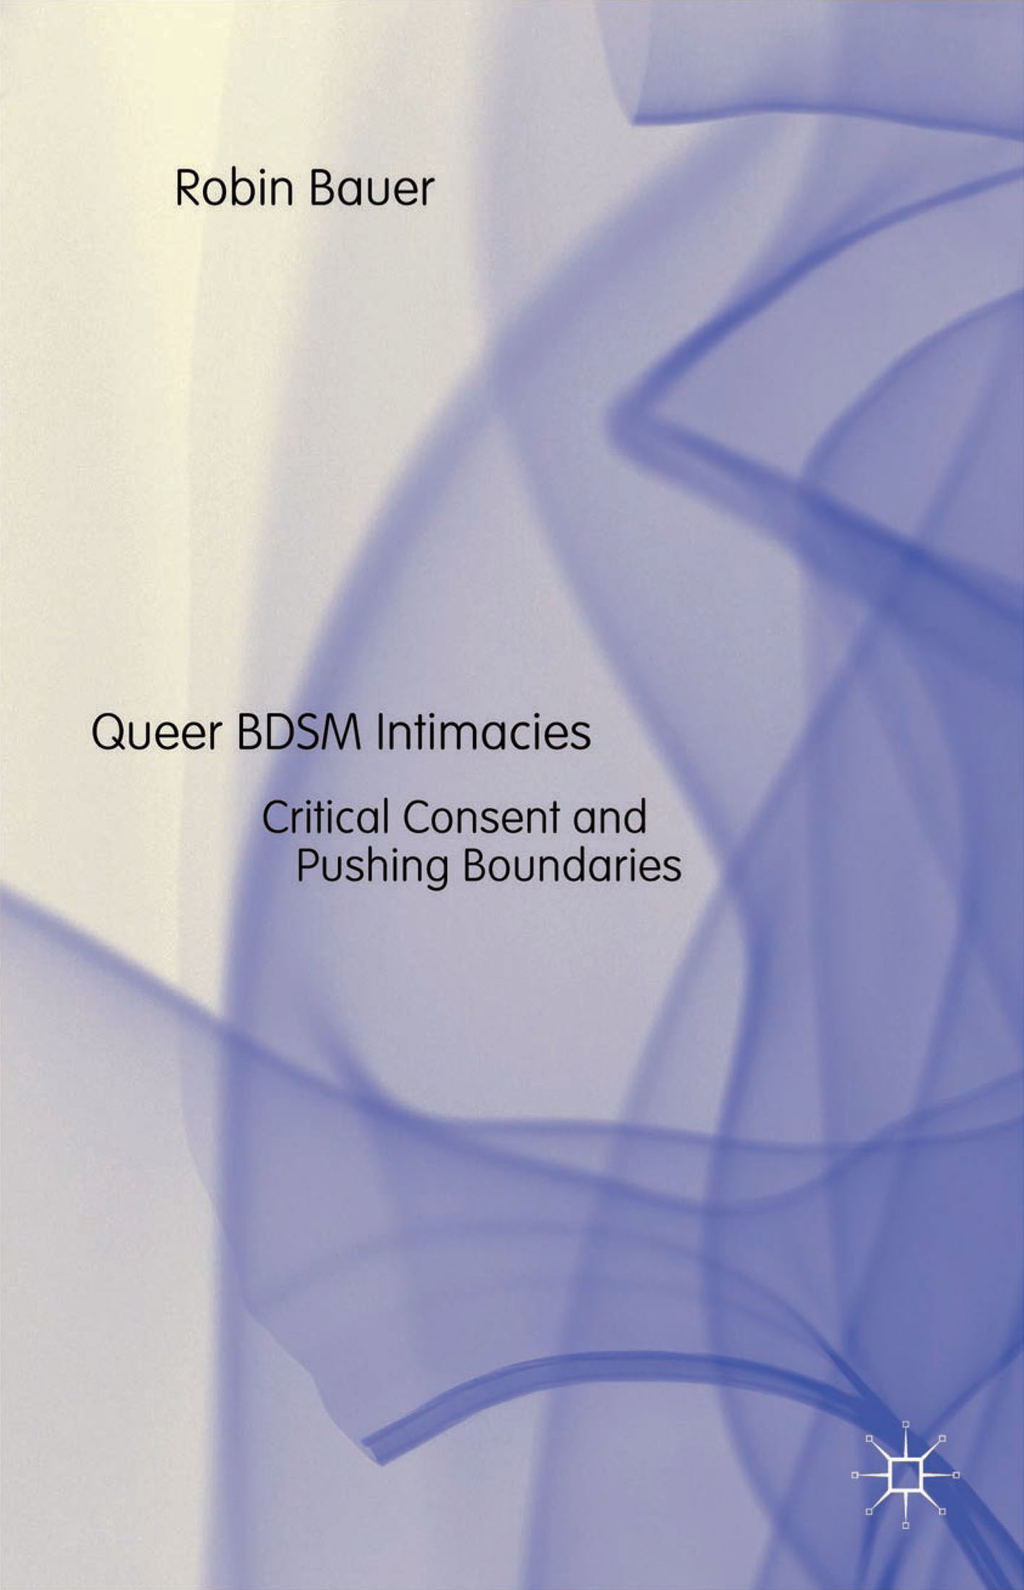 Queer BDSM Intimacies Critical Consent and Pushing Boundaries